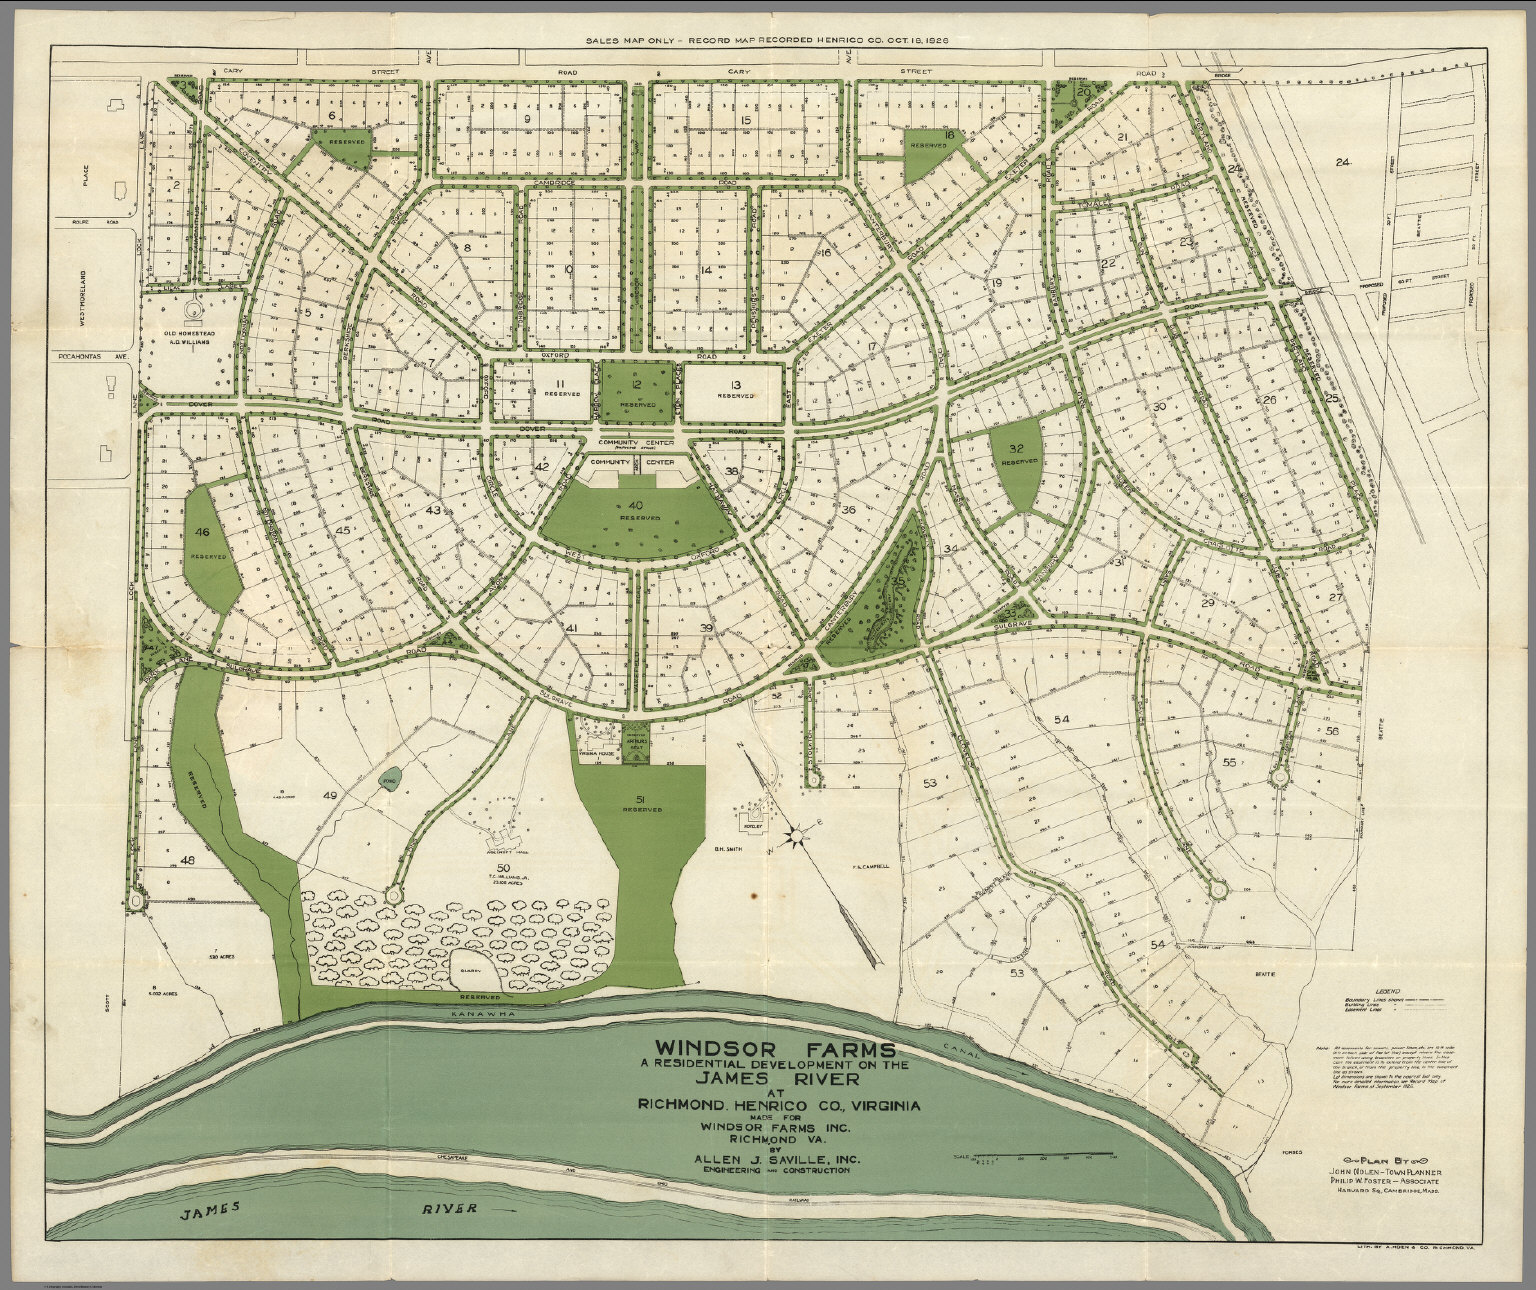 Windsor Farms A Residential Development On The James River At